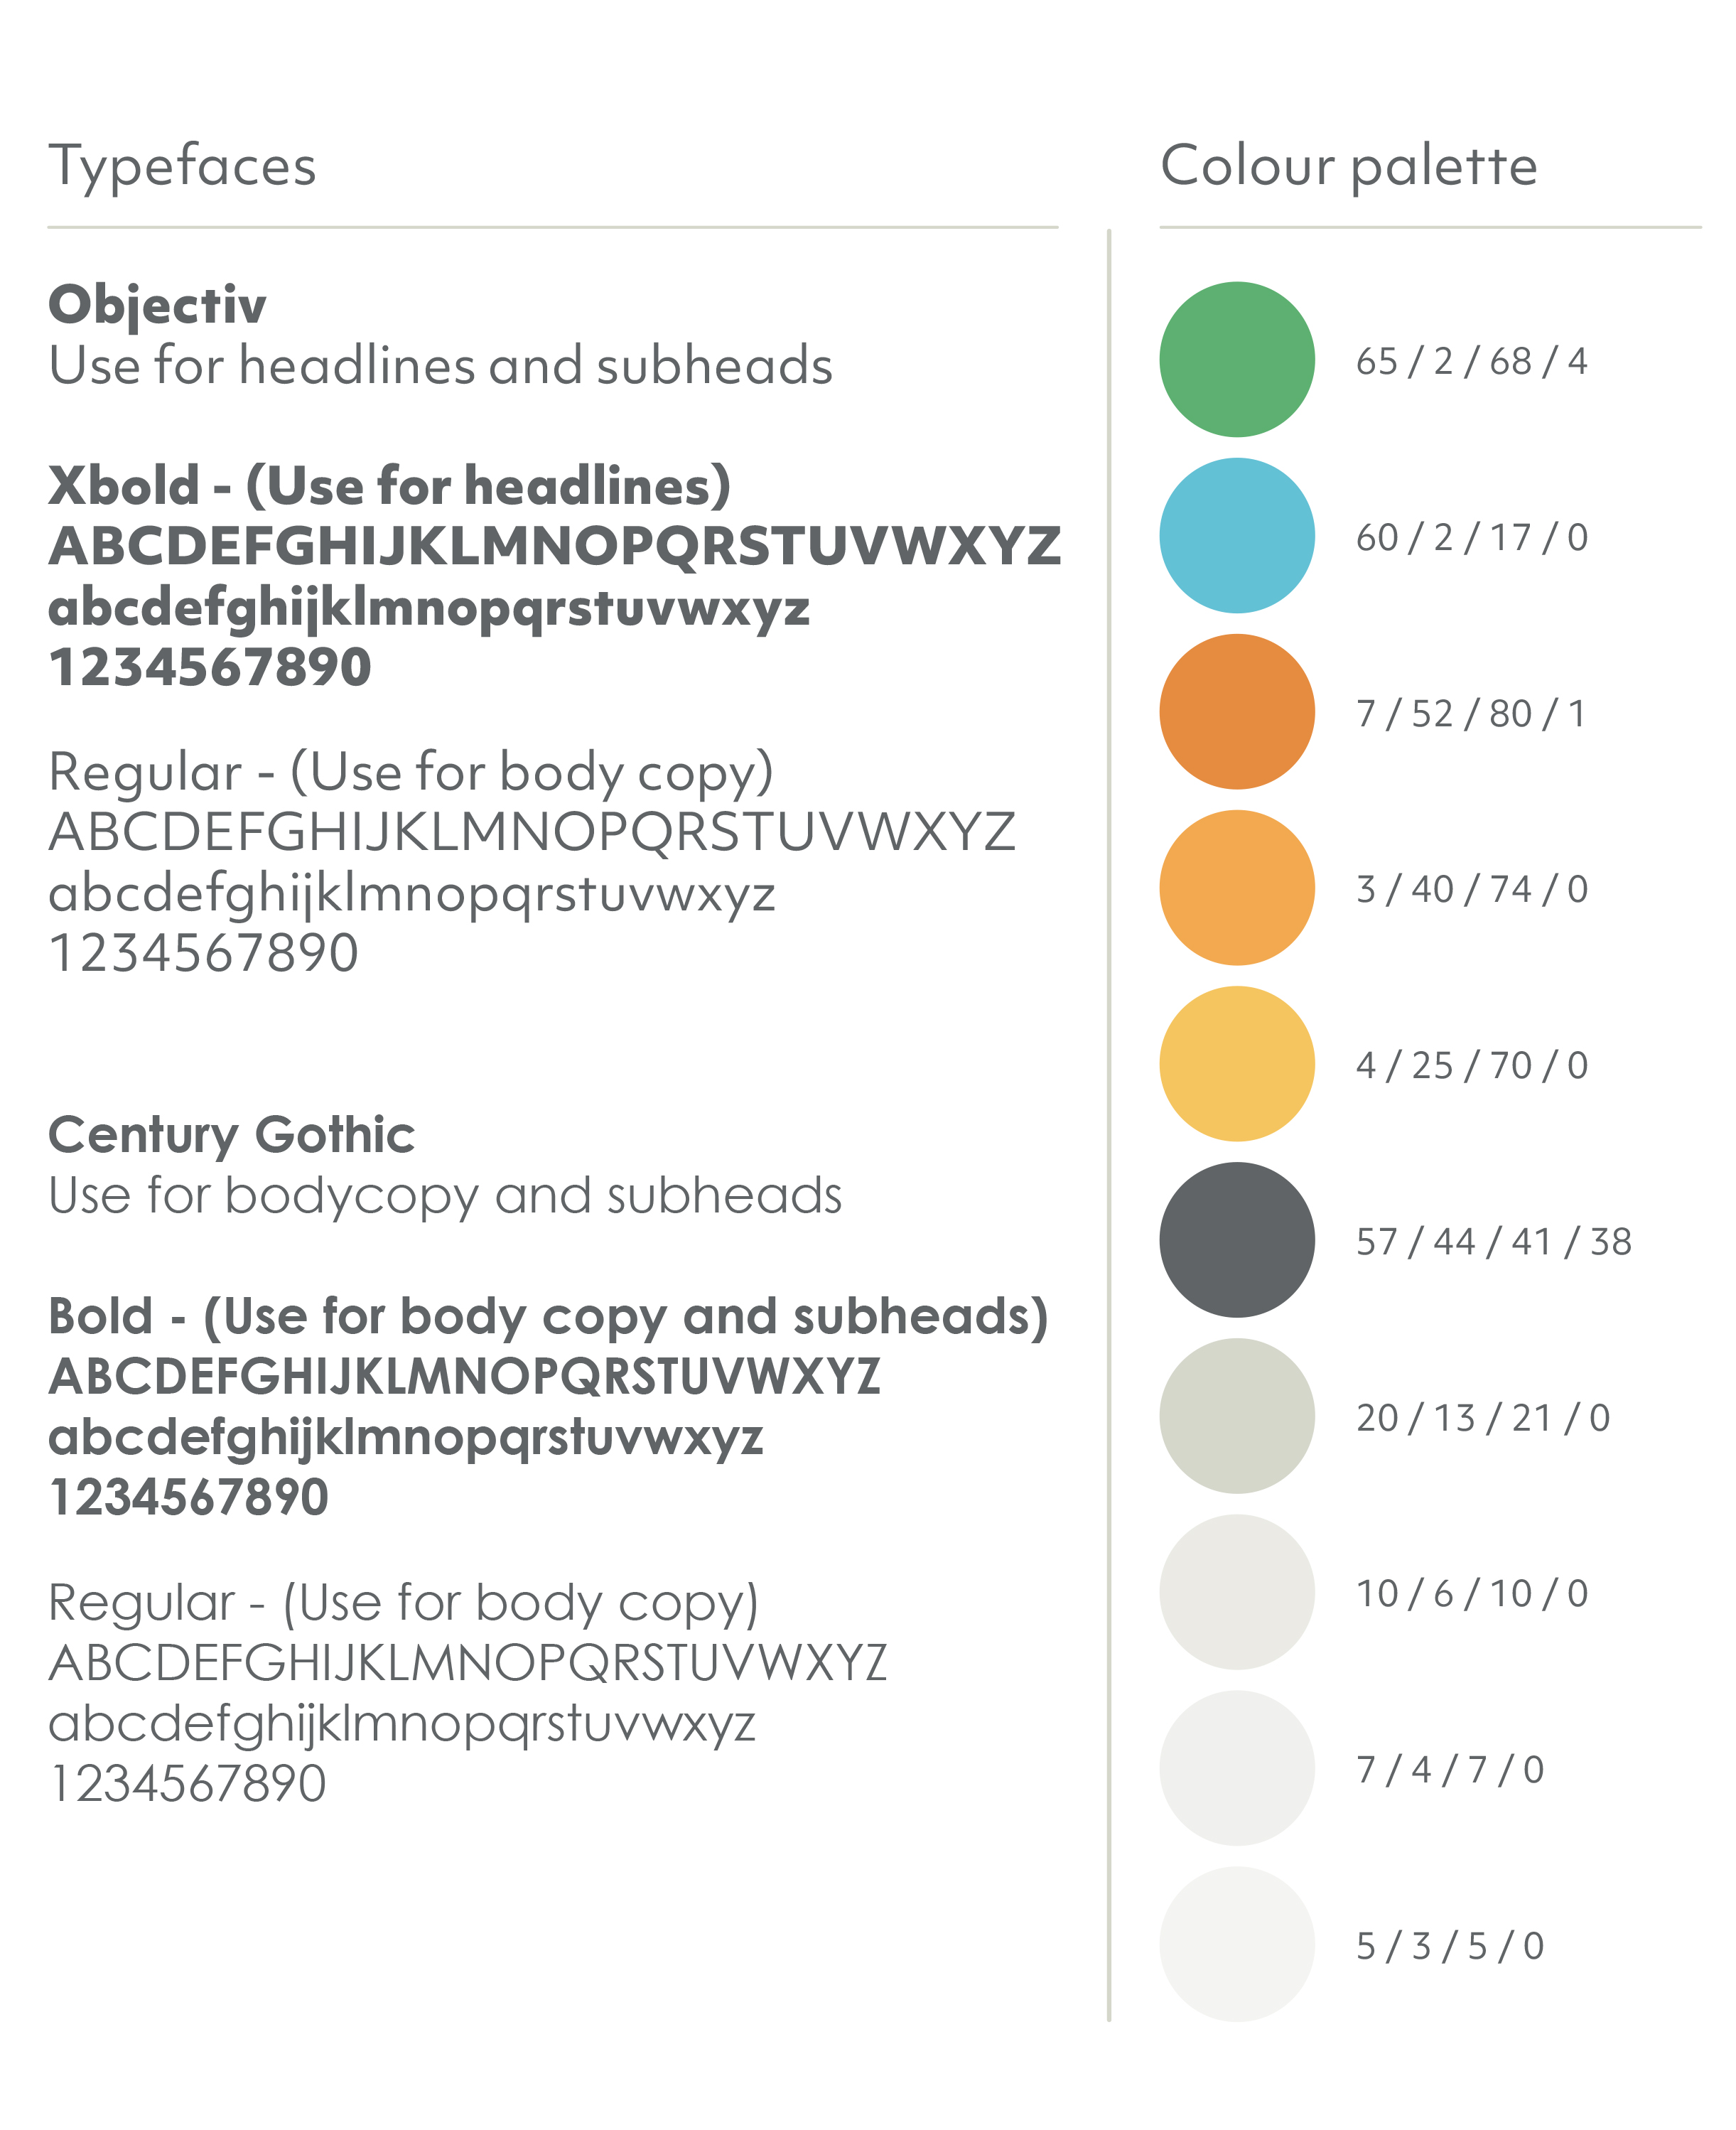 Type and Colour palette